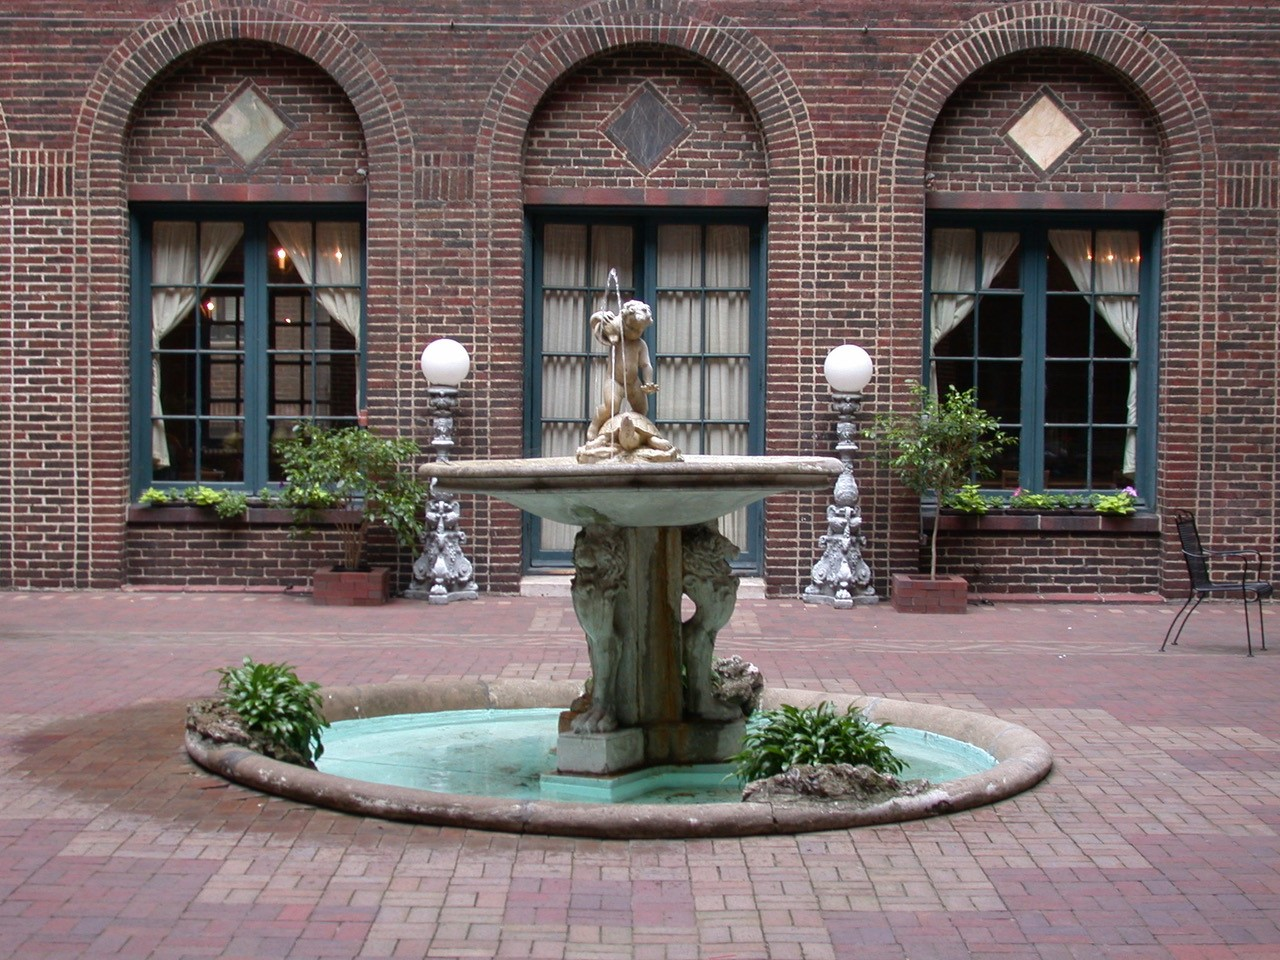 Decorative fountain in the center of a brick patio with three arched windows in the background